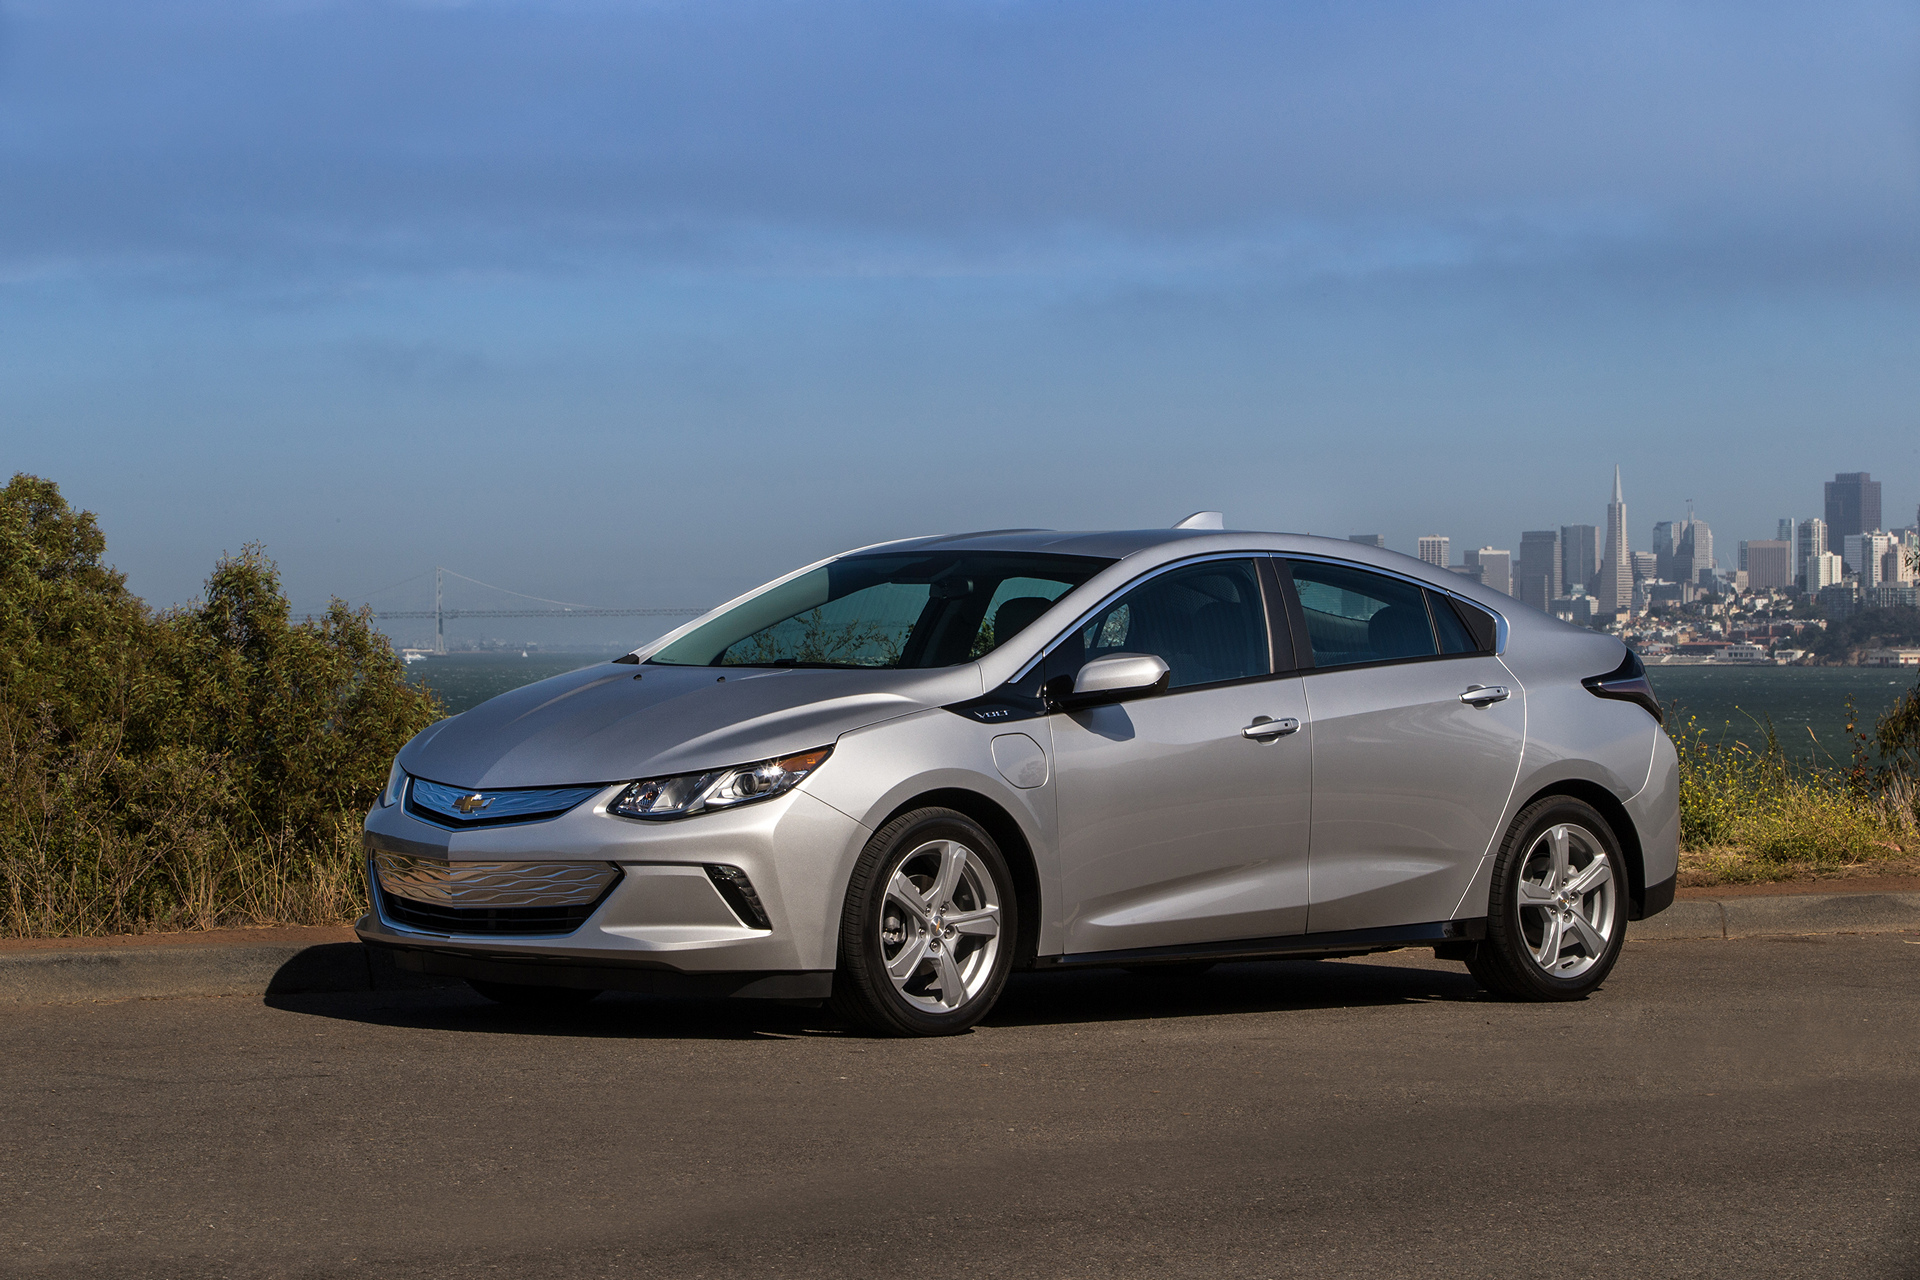 Best Hybrid and Electric Cars for 2016-2017